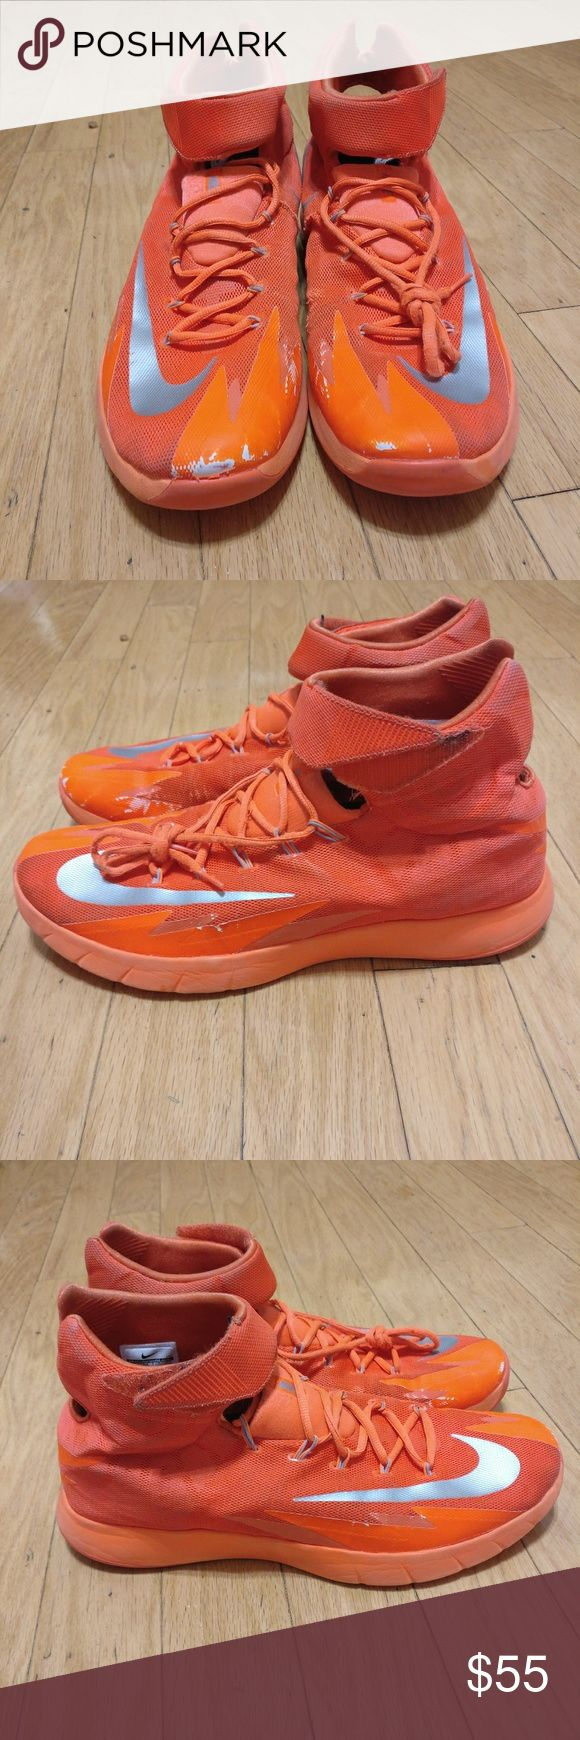 Nike Zoom Hyper Rev Kyrie Orange 8/10 condition. In overall very good condition. Nike Shoes Athletic Shoes